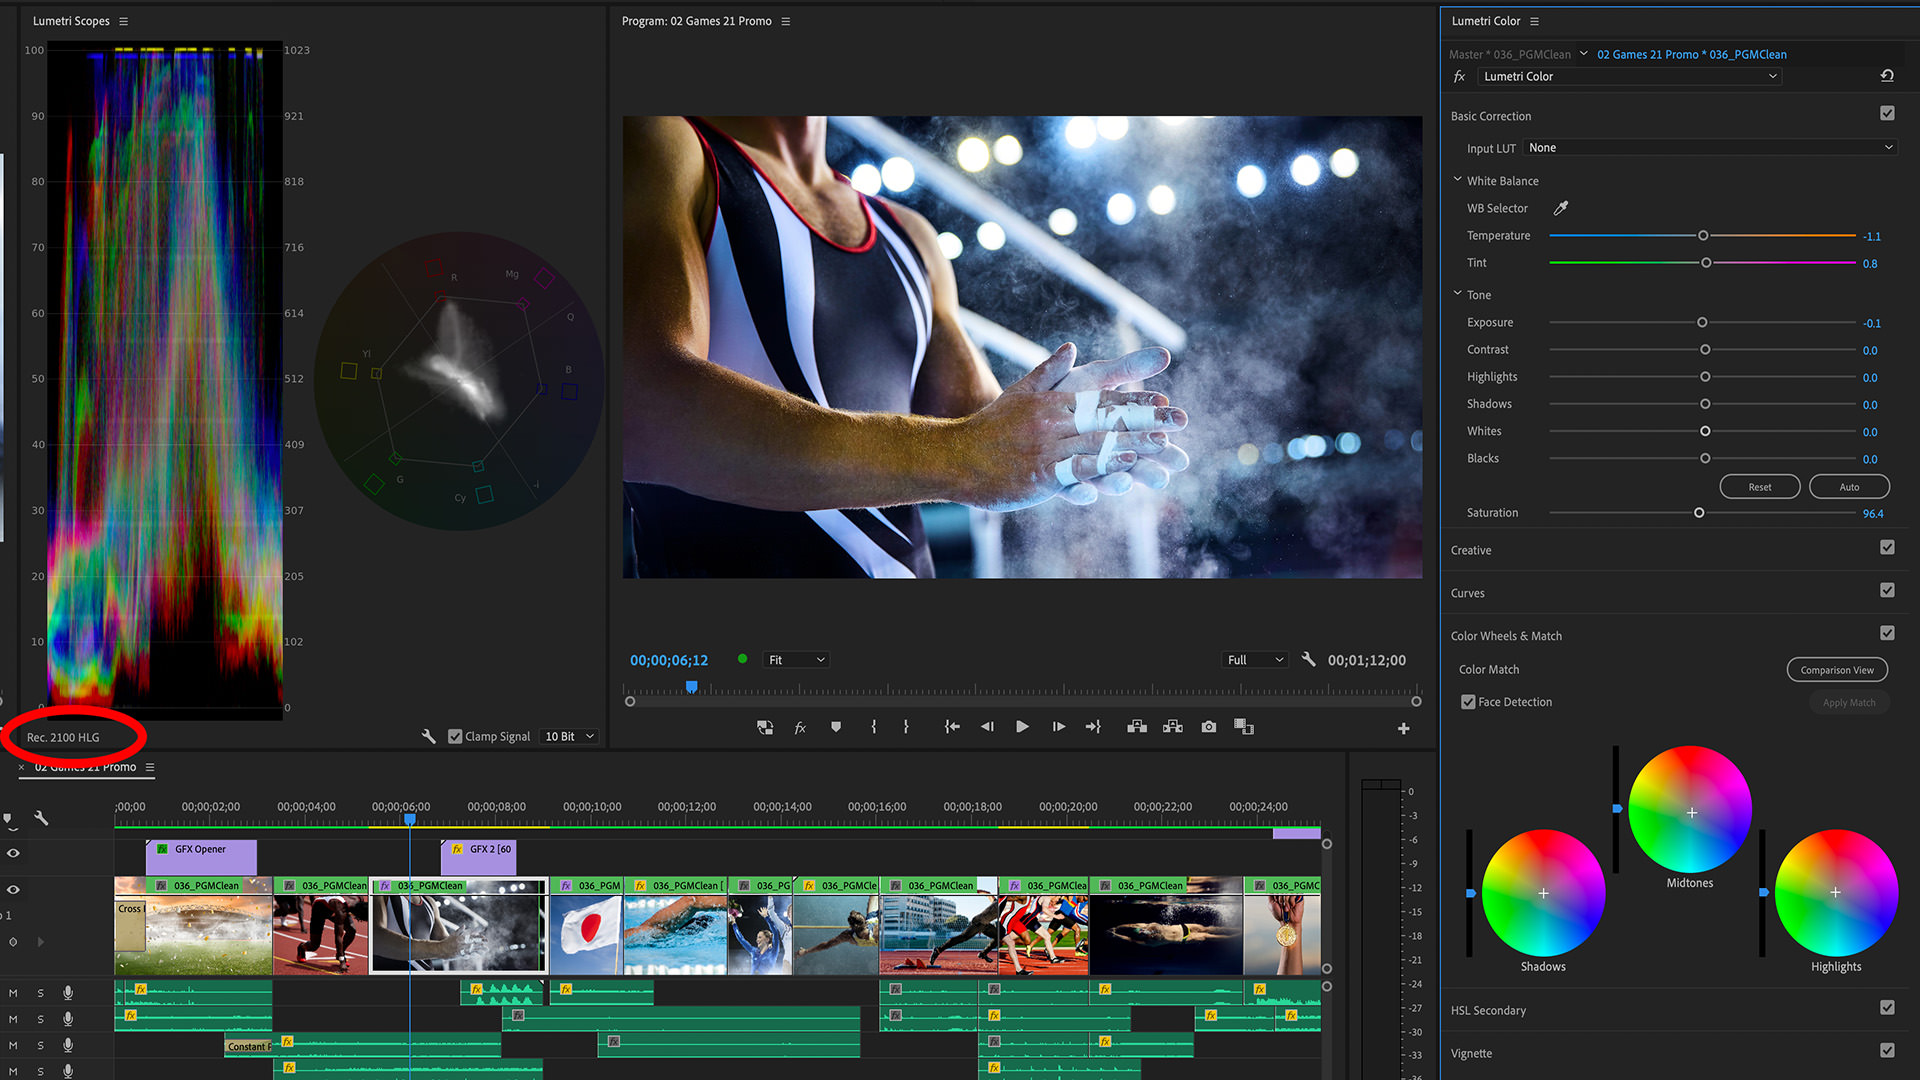 Adobe Creative Cloud Video - Novità Settembre 2020